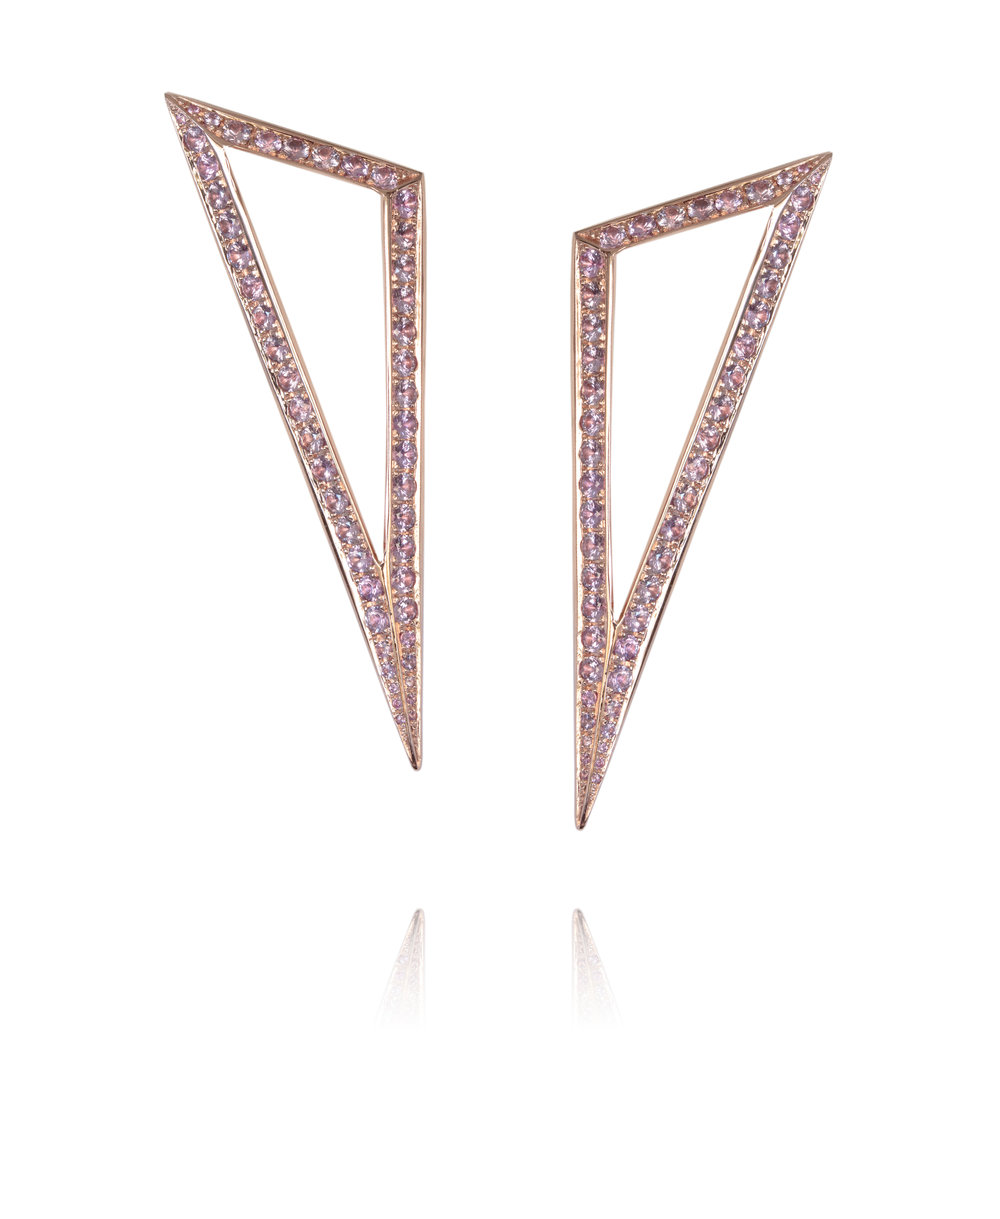 Earrings  18KT Rose Gold, Pink Sapphires  REF. MOT266